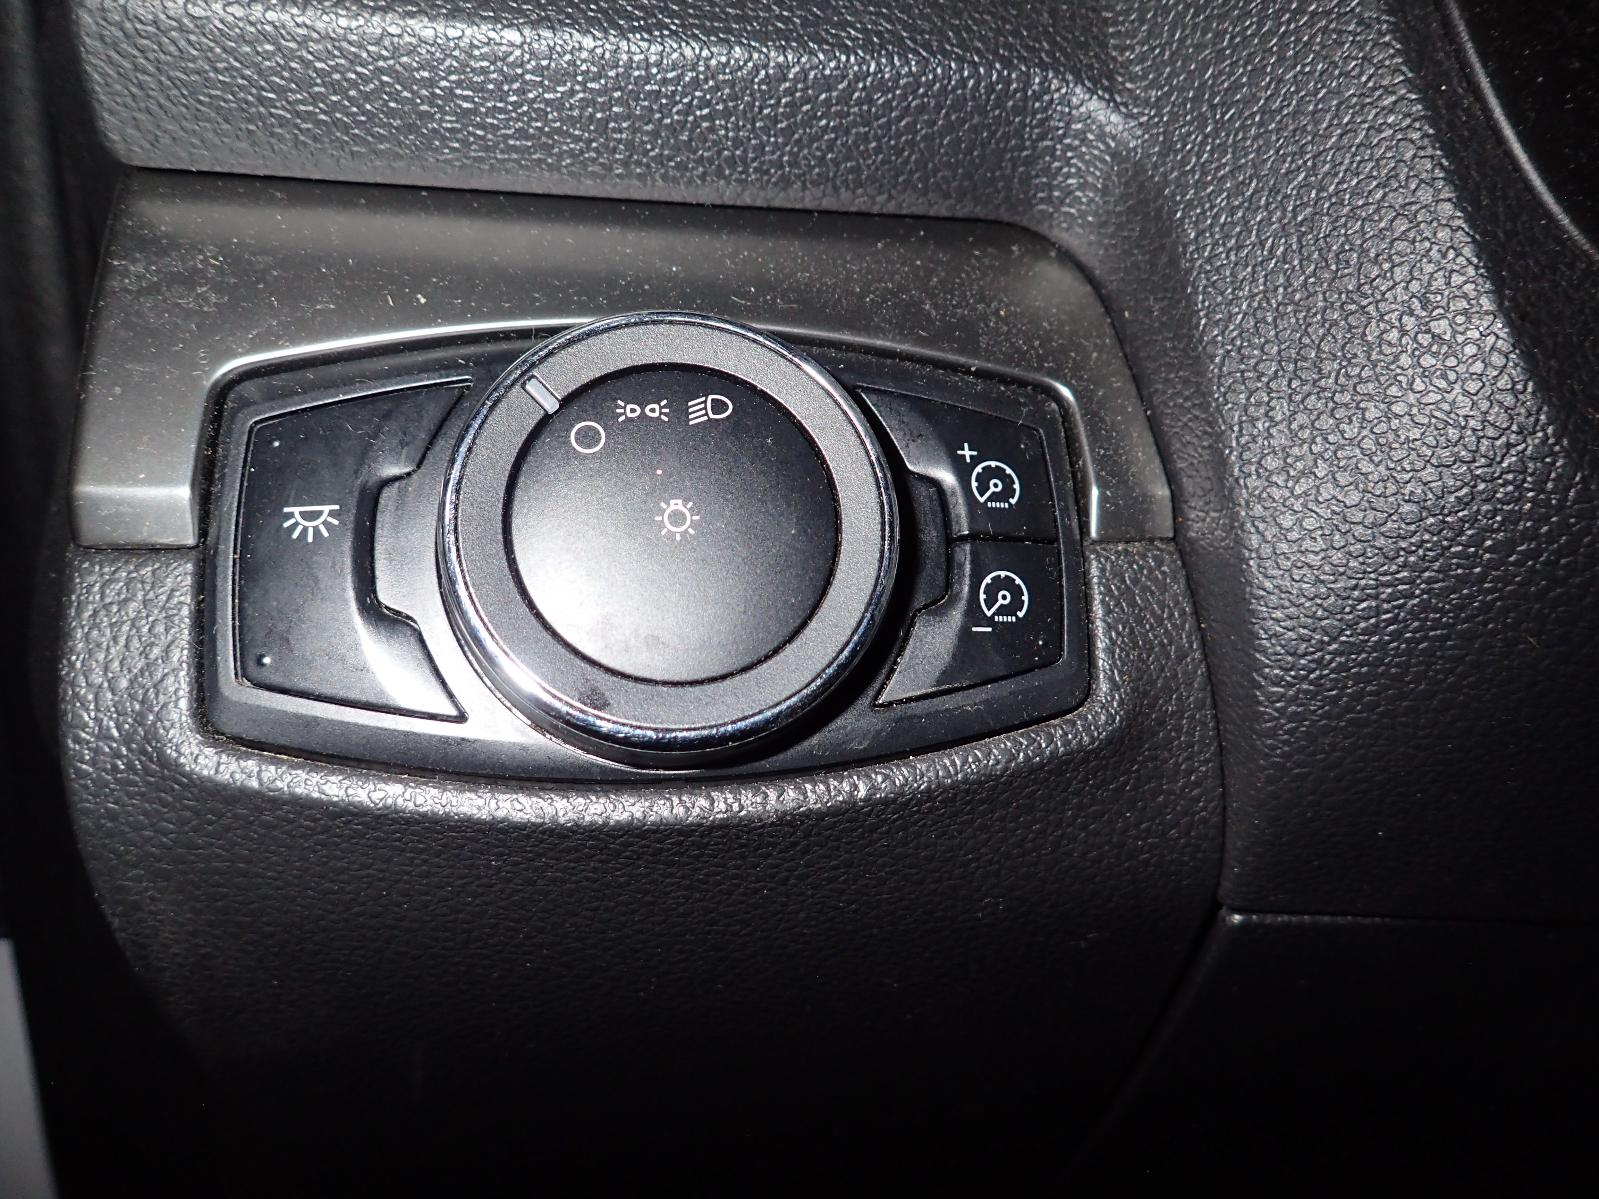 Used interior switch for sale for a 2013 ford explorer - 2013 ford explorer interior parts ...